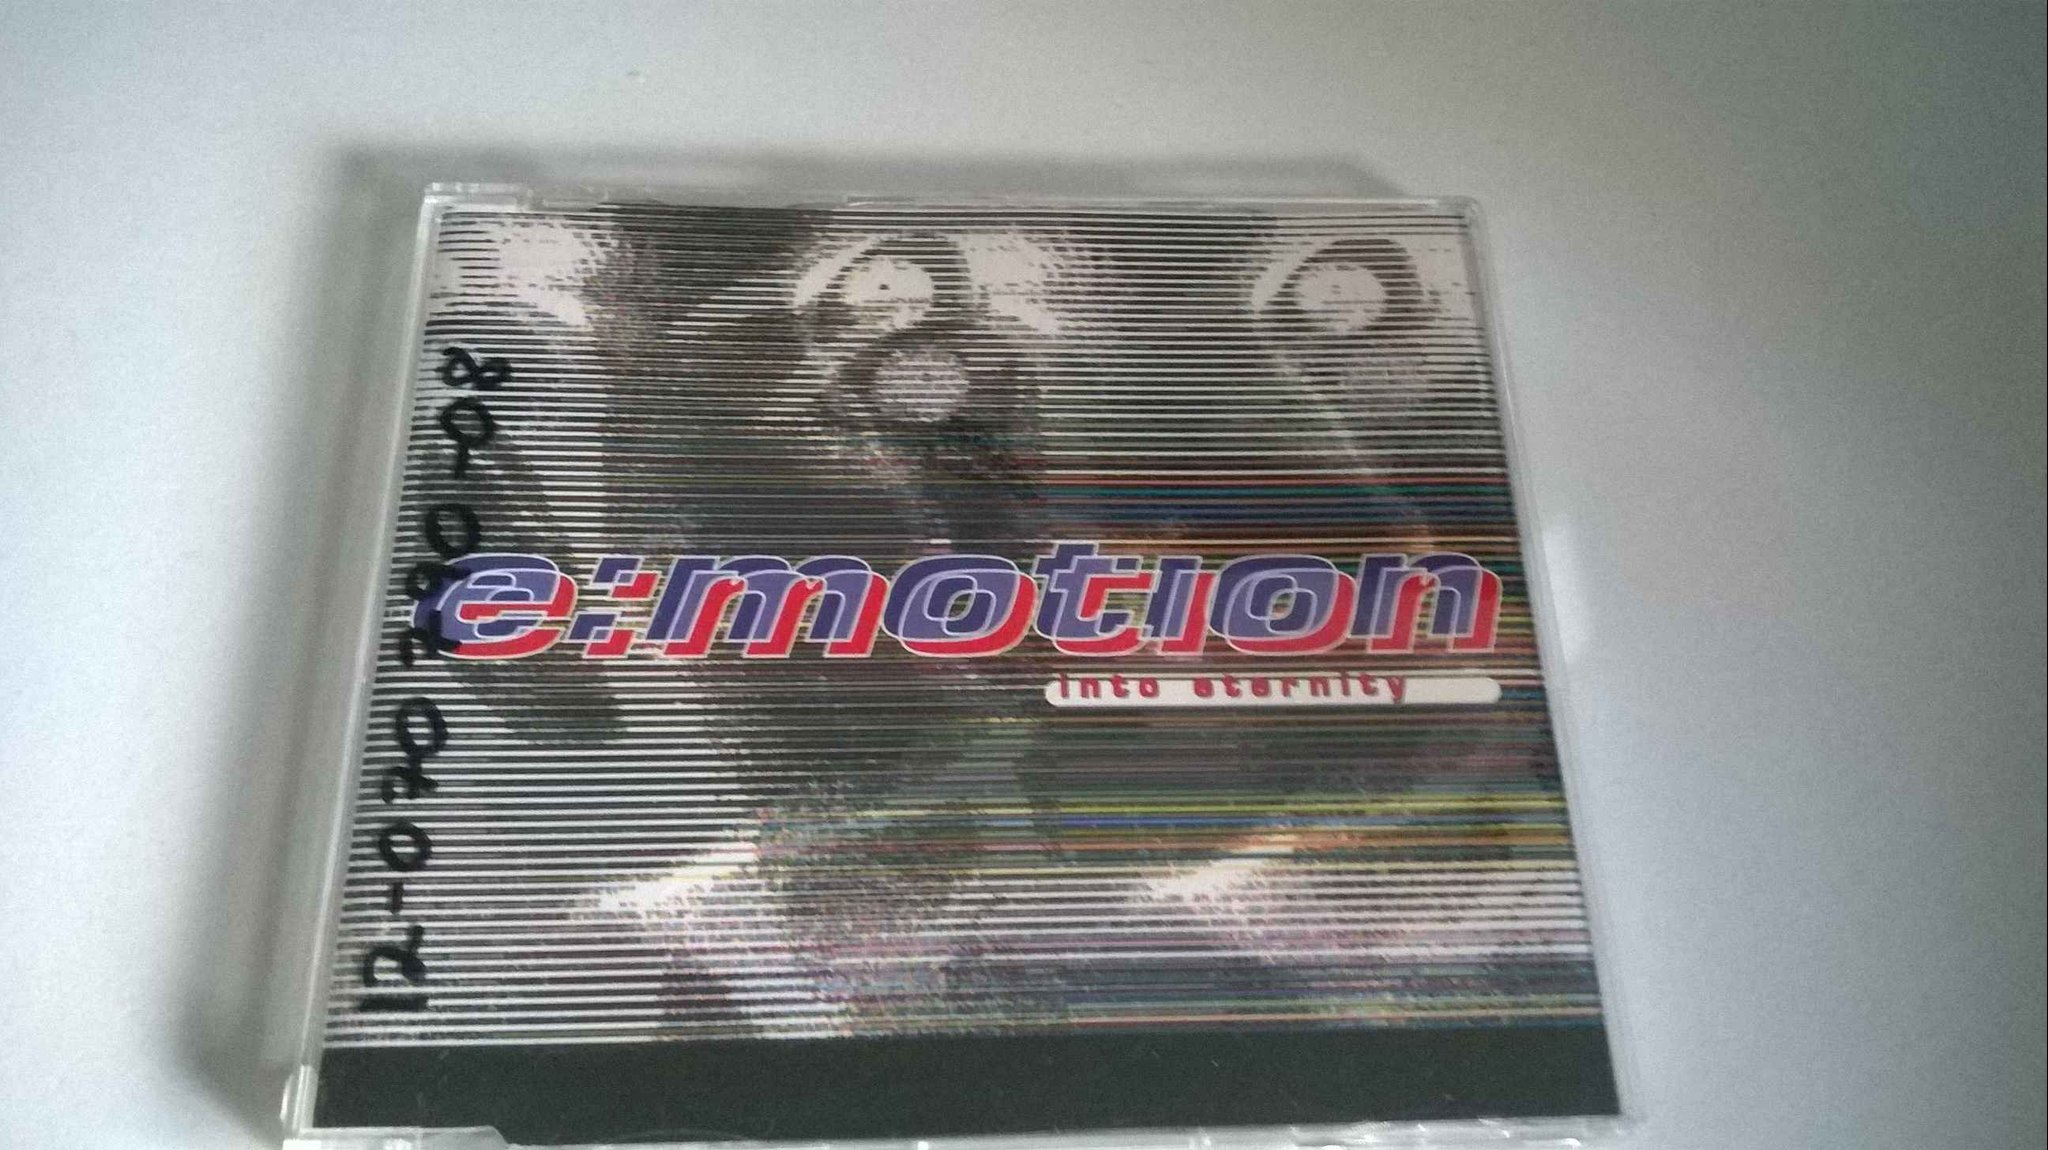 E:Motion - Into Eternity, CD